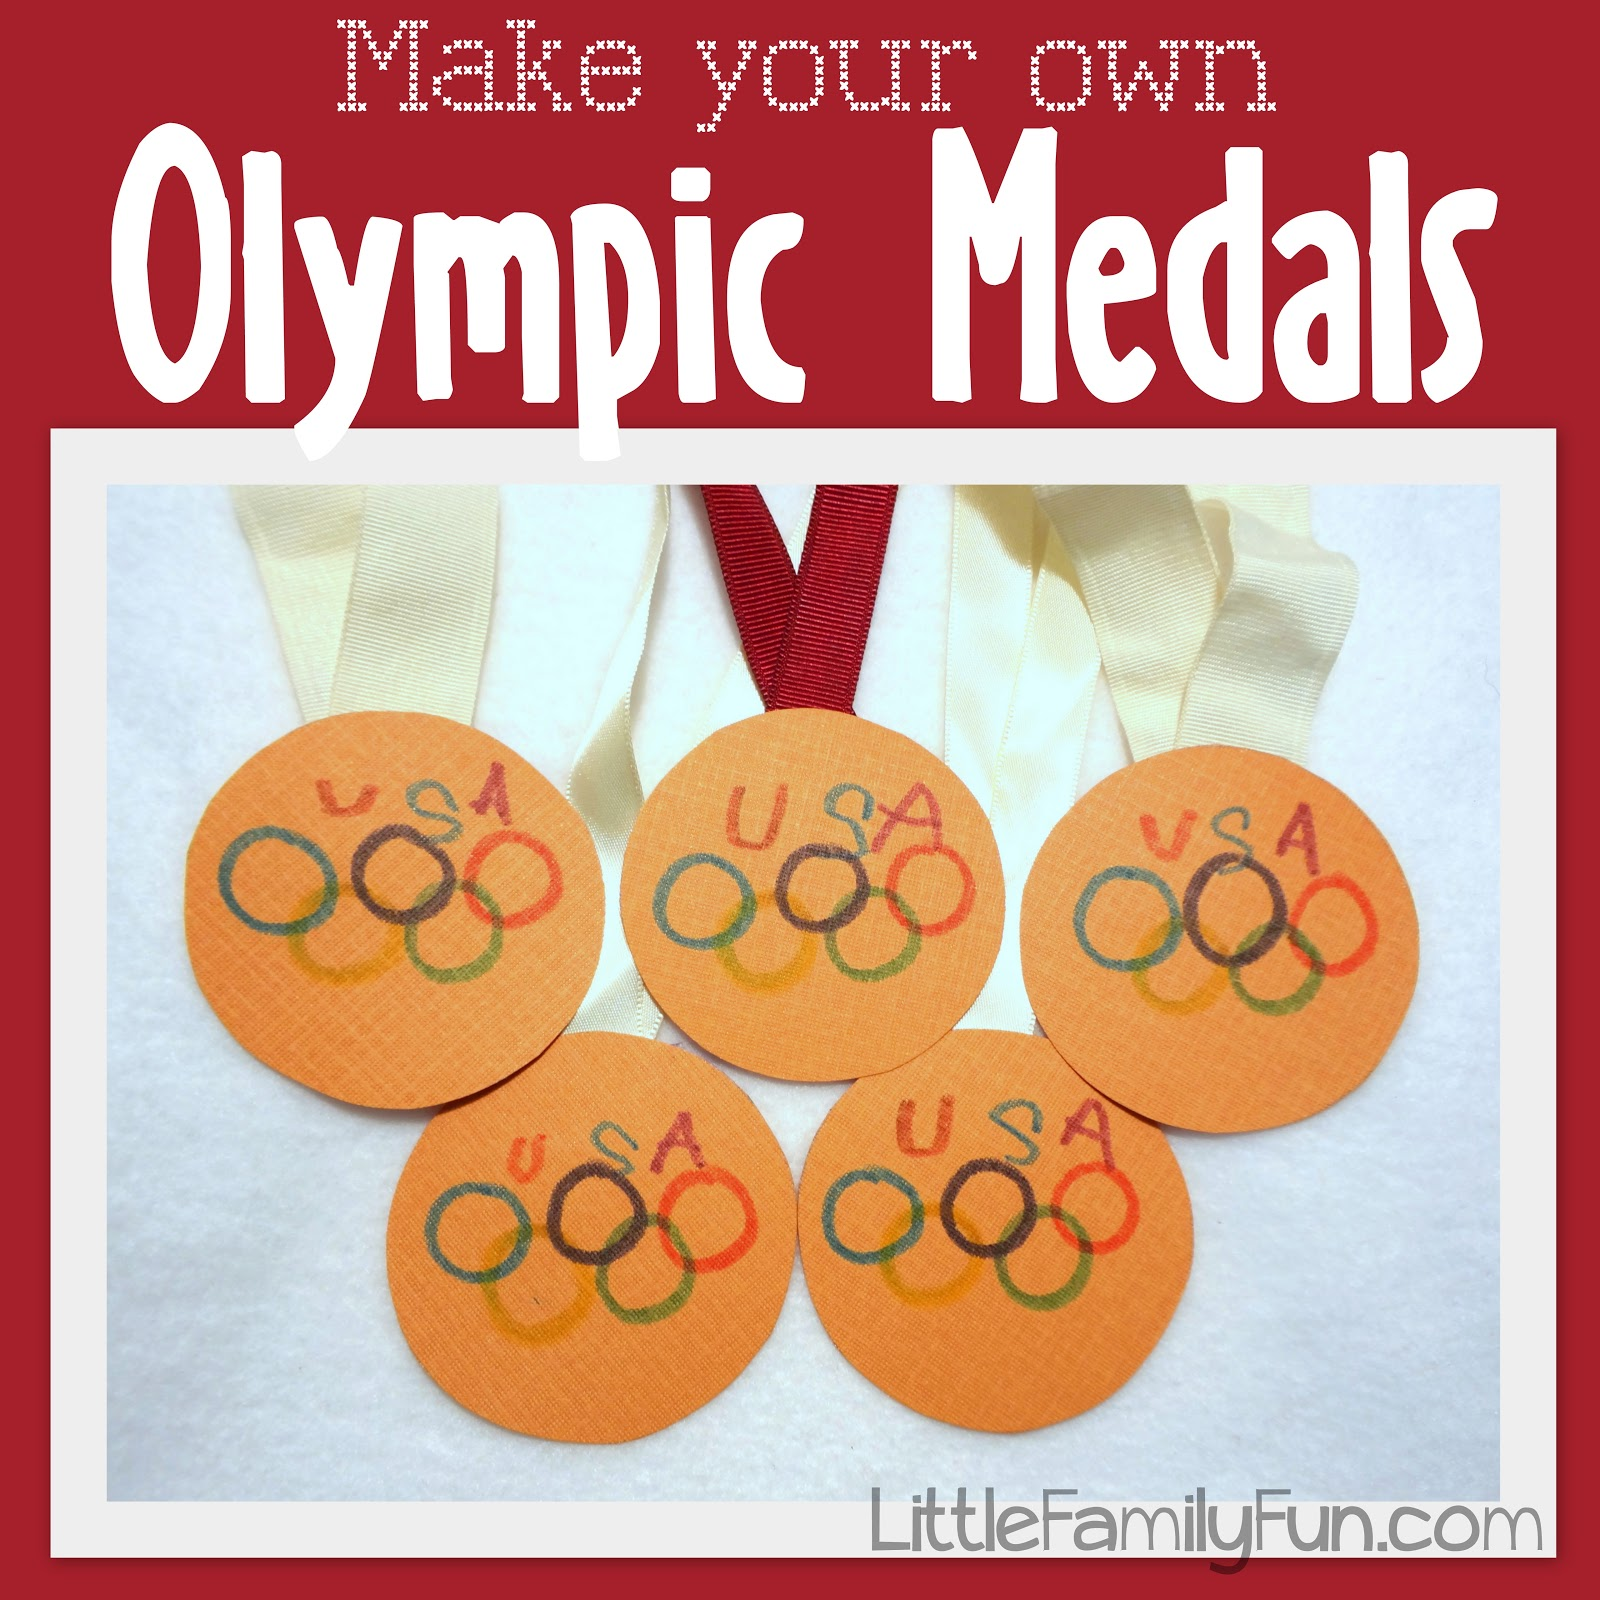 Little Family Fun Family Olympics Medals